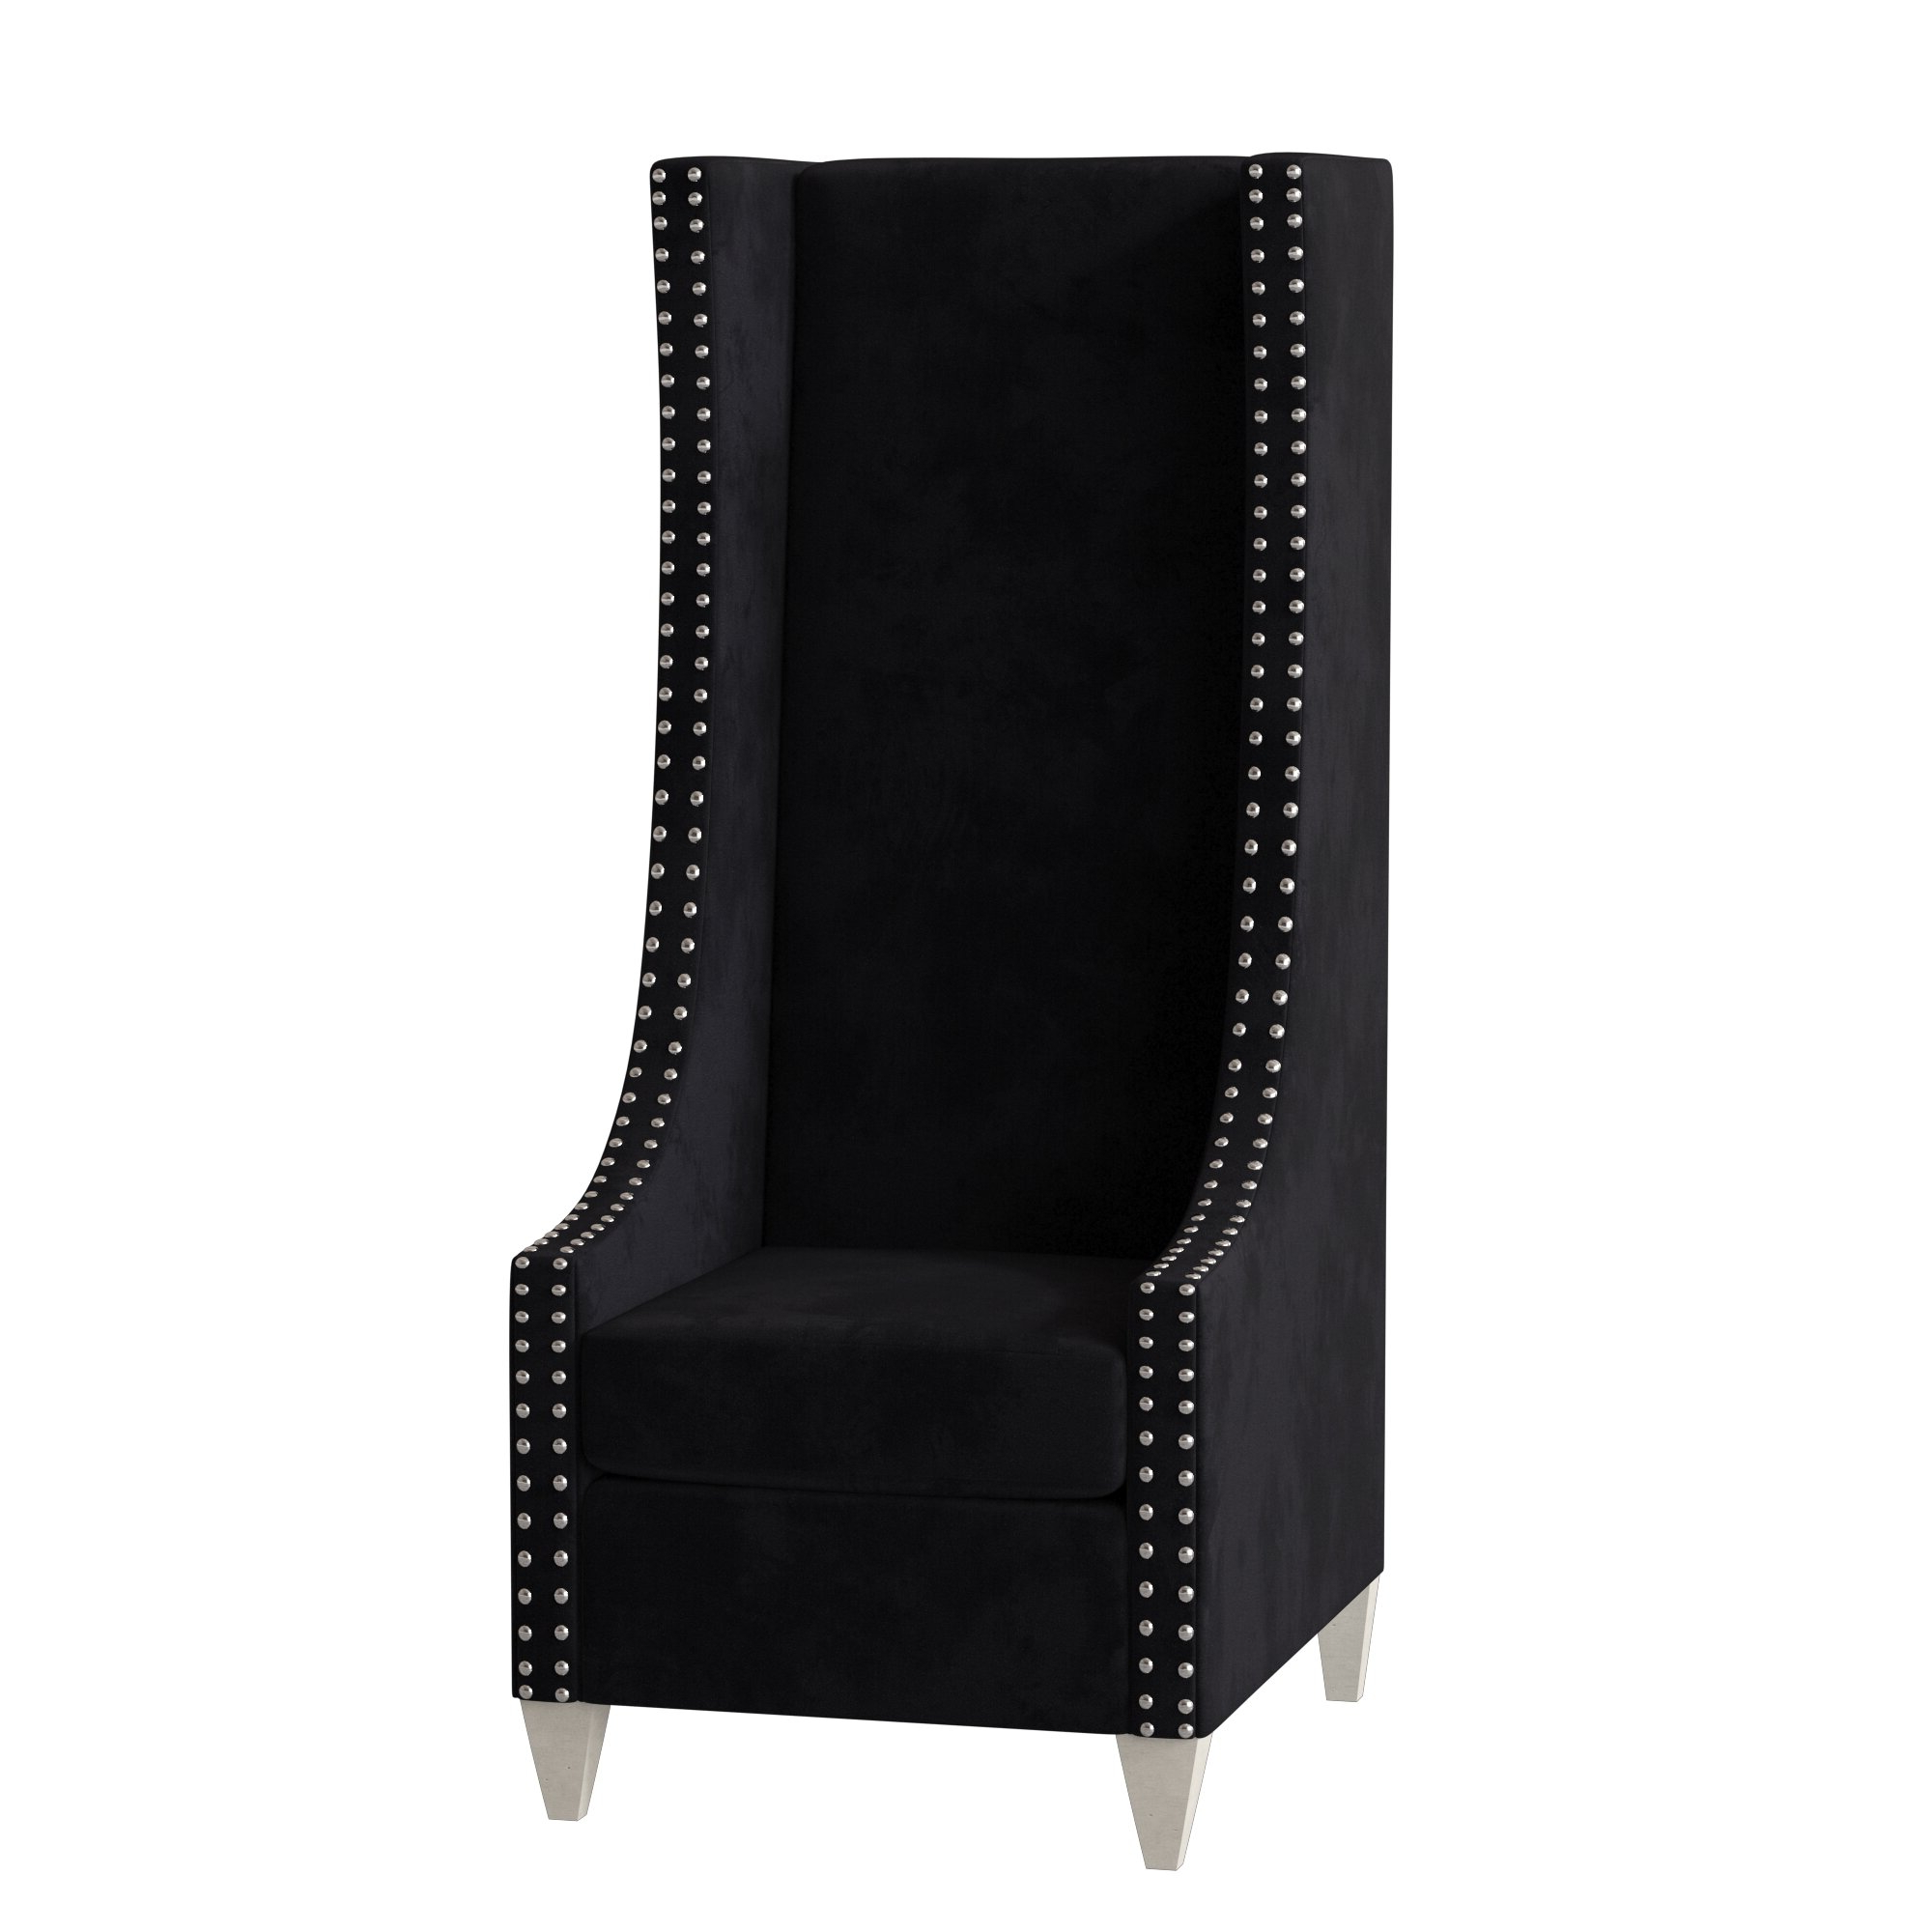 Chenille Wingback Accent Chairs You'll Love In  (View 6 of 20)